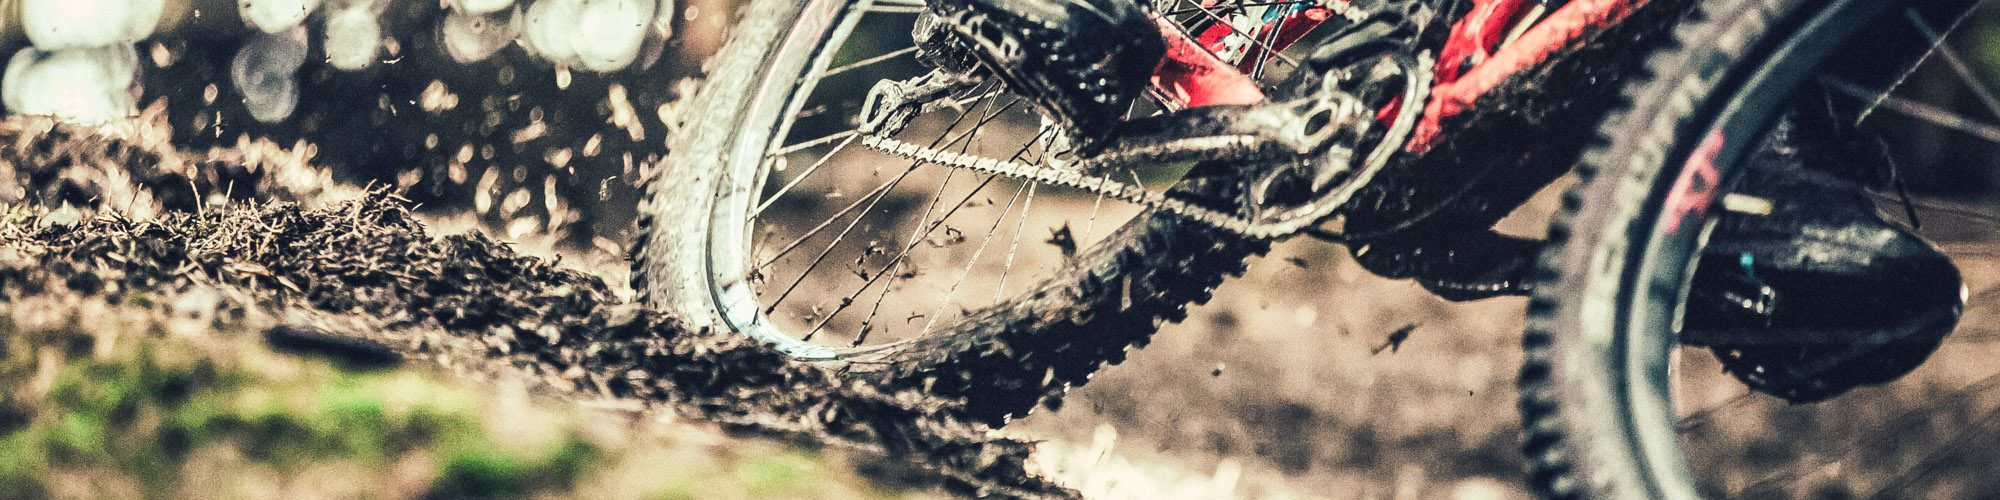 how much air do i put in my mountain bike tires bicycling and the best bike ideas. Black Bedroom Furniture Sets. Home Design Ideas